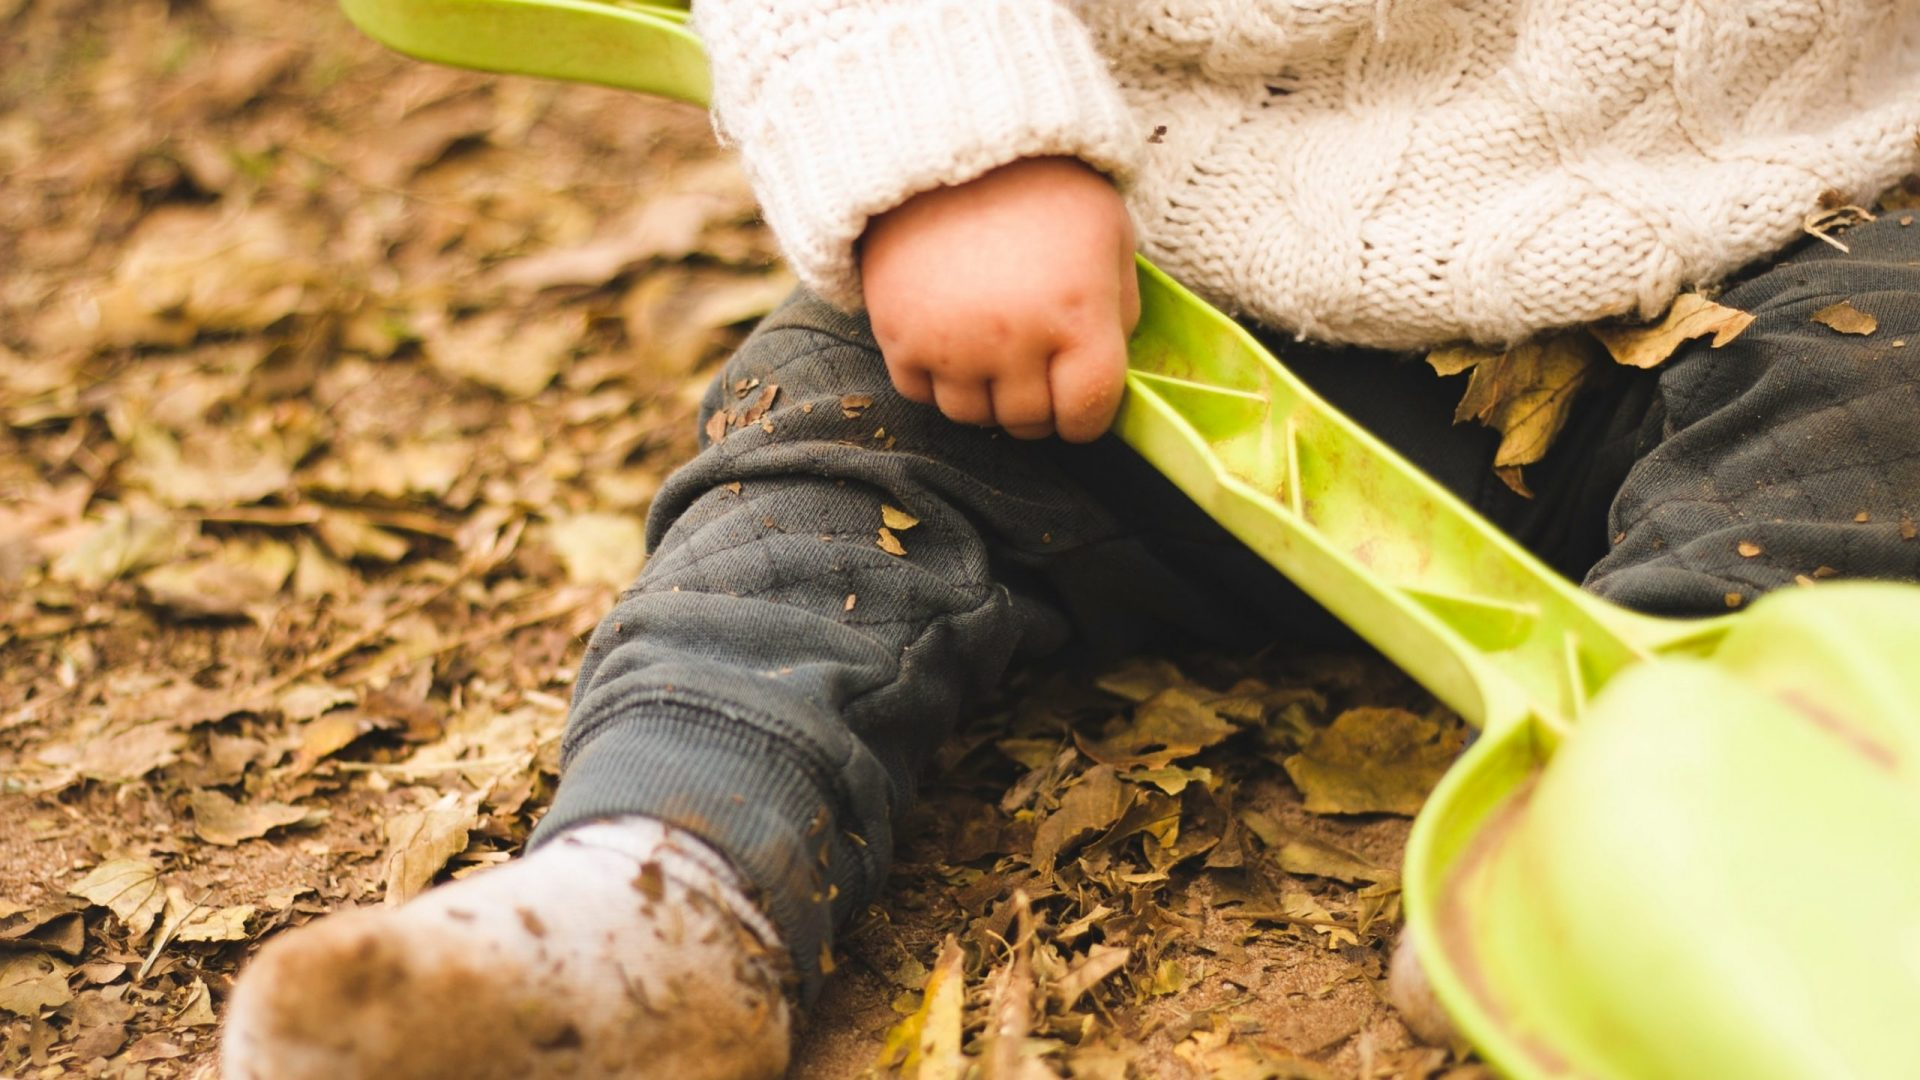 toddler with leaves on socks holding shovel